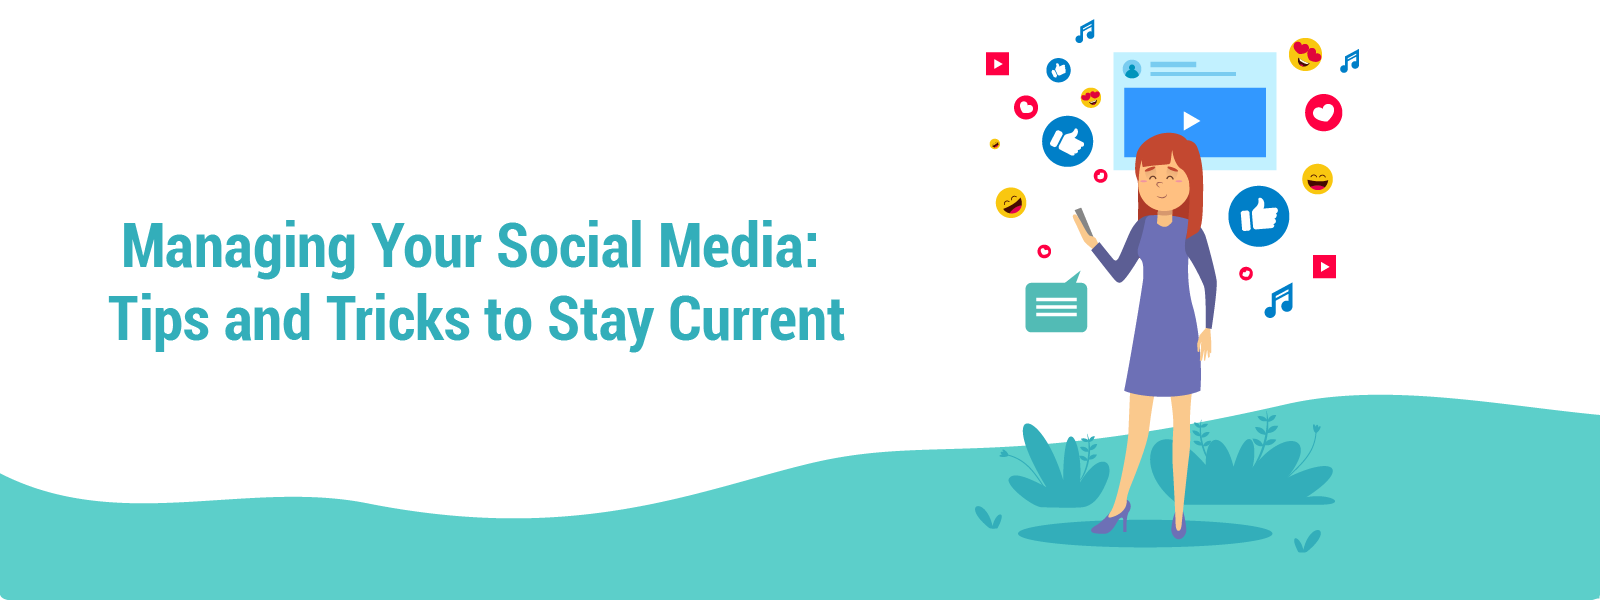 Managing Your Social Media: Tips and Tricks to Stay Current